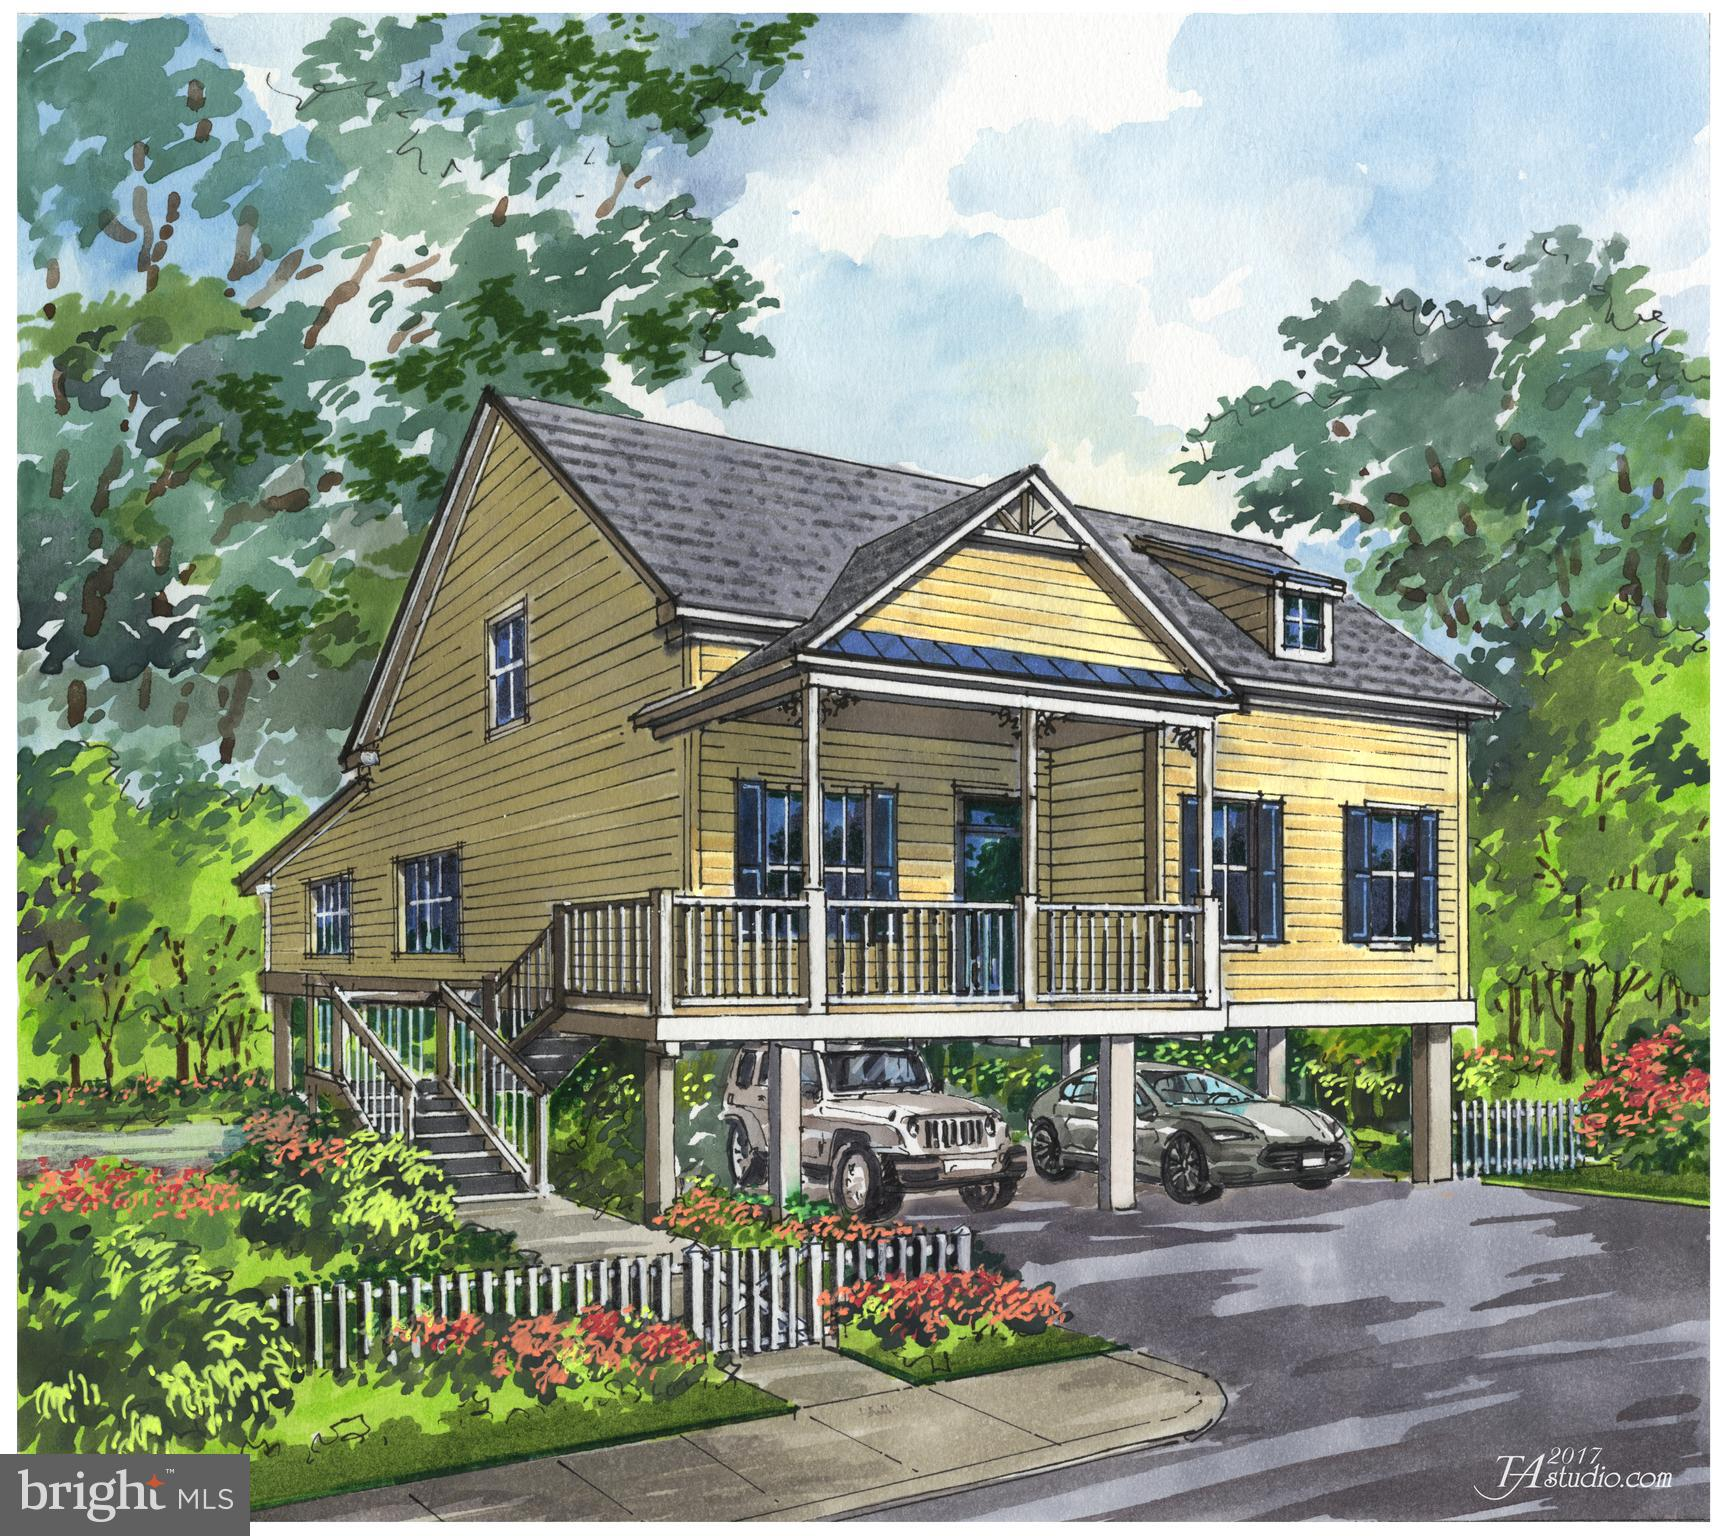 Model open Thursday through Monday from 11 am  - 4 pm.  Salt Aire is a new secluded Delaware beach c